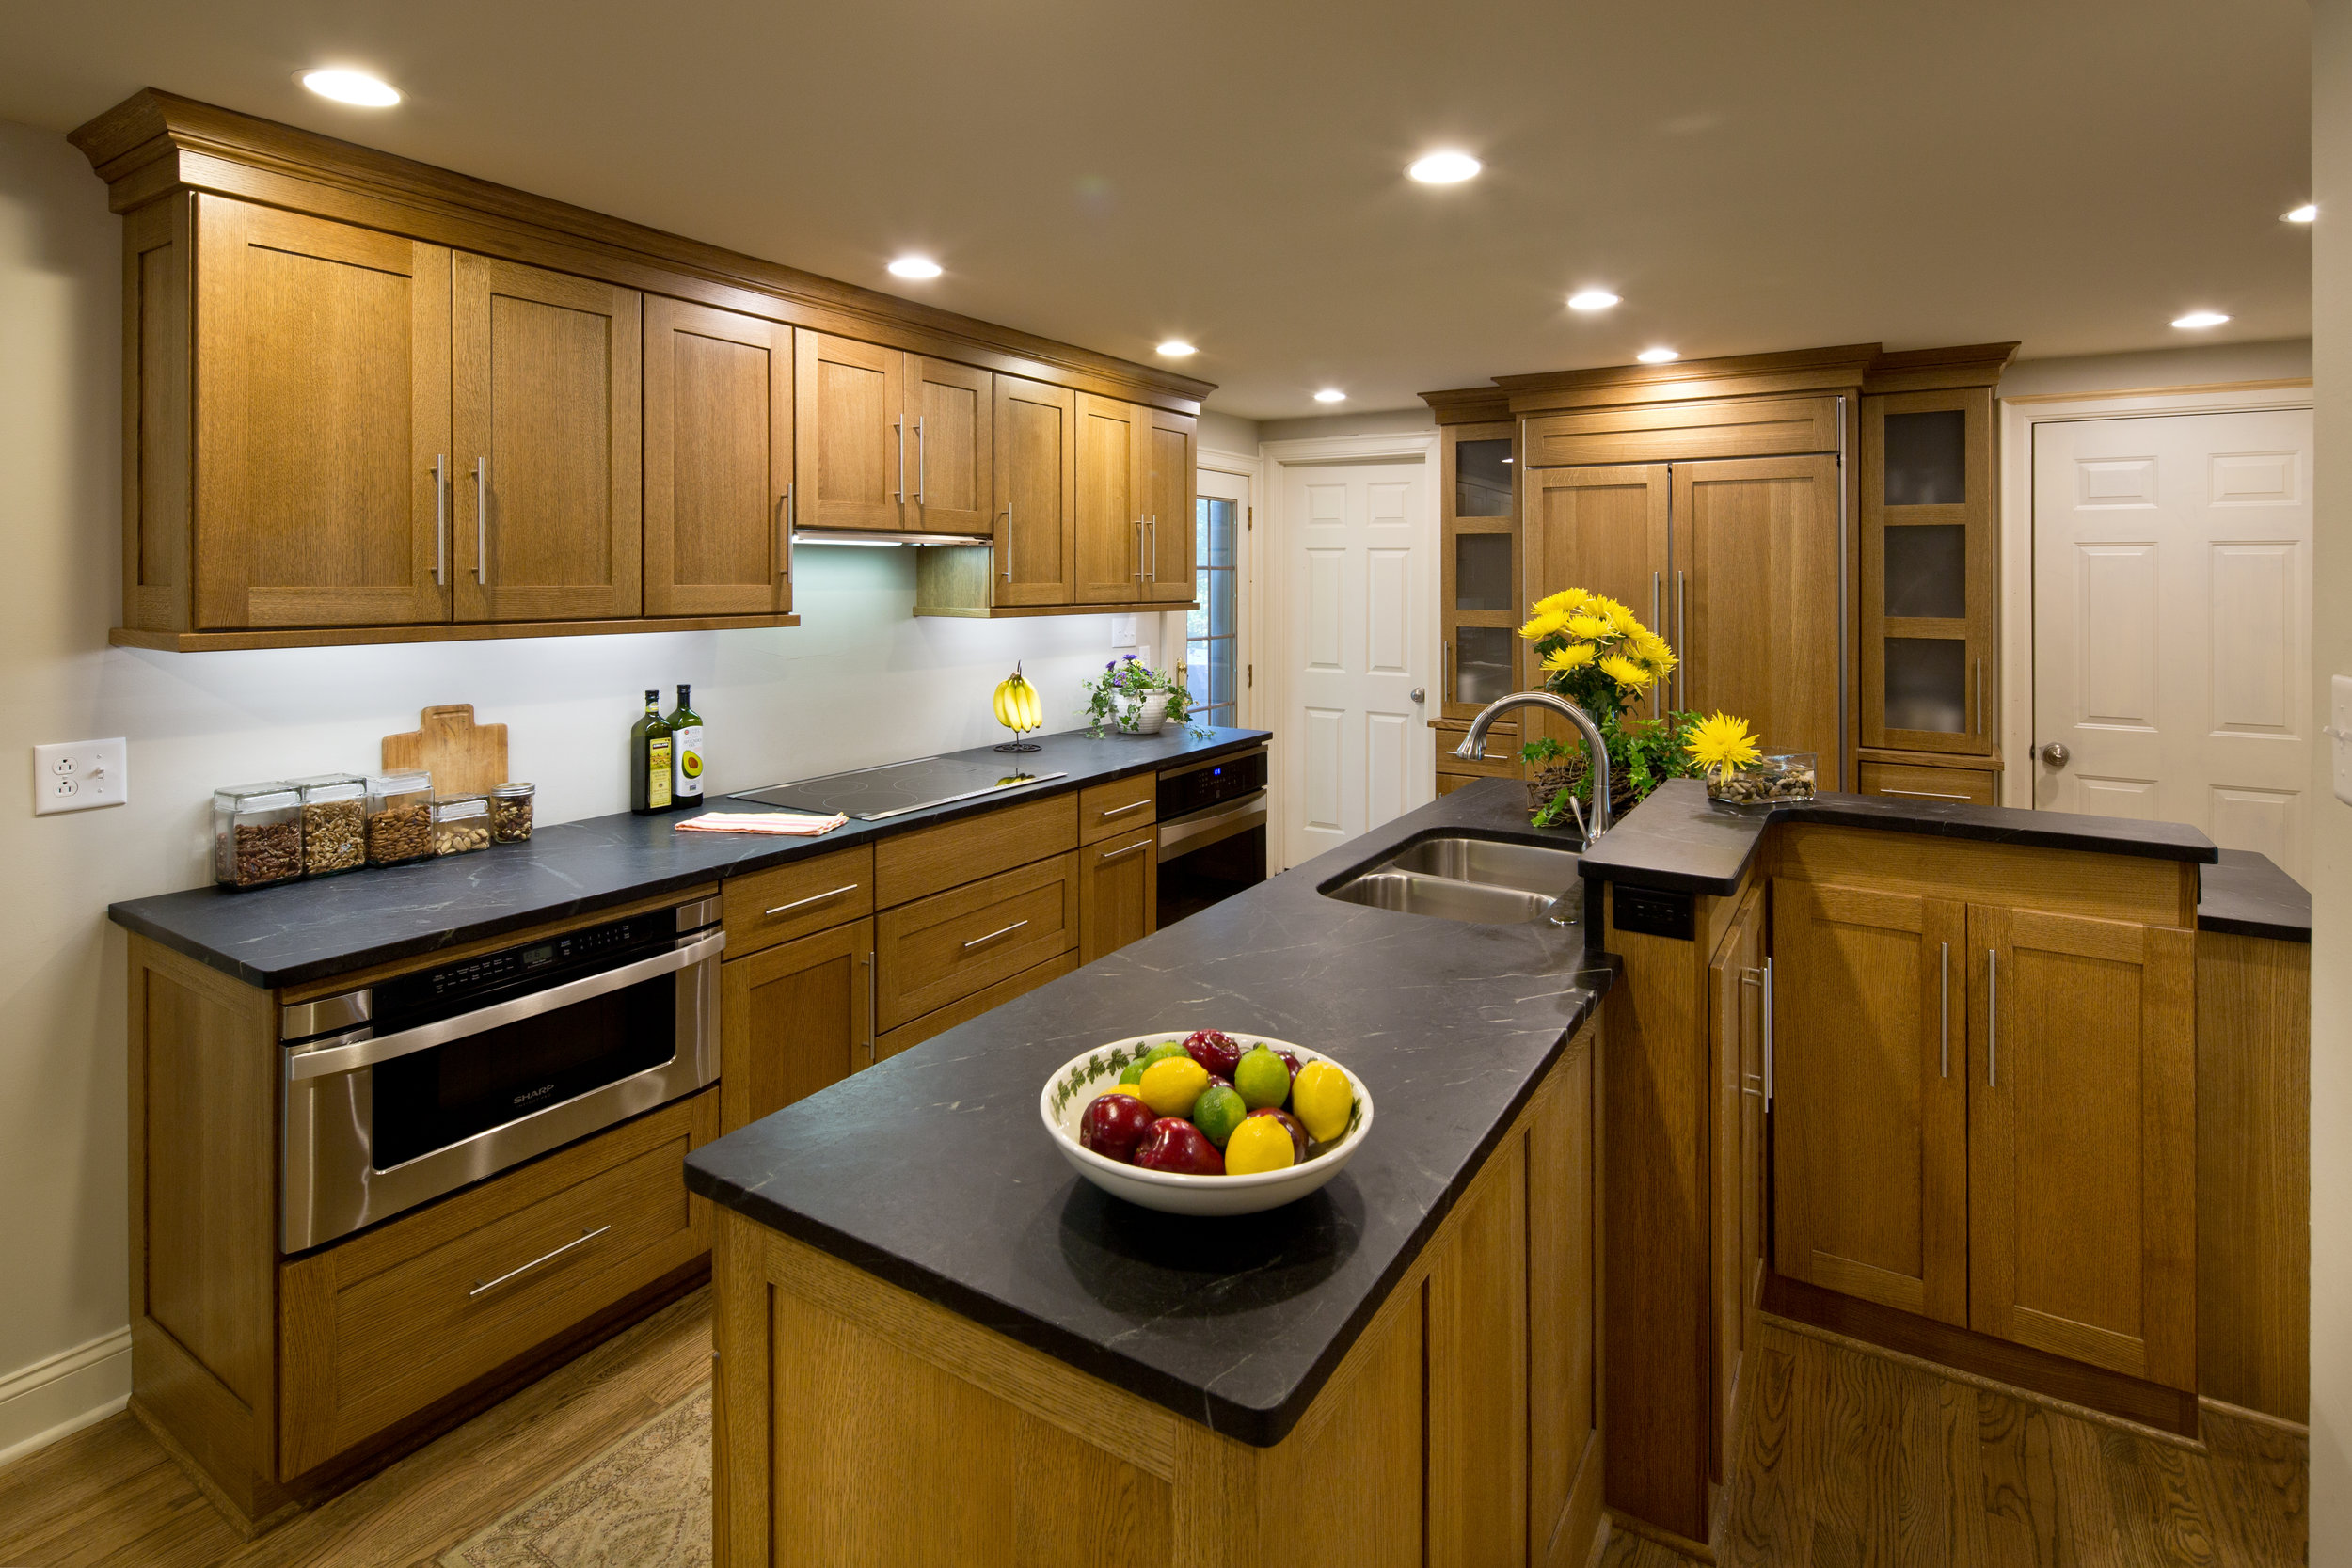 quality kitchen cabinets for sale in Ohio